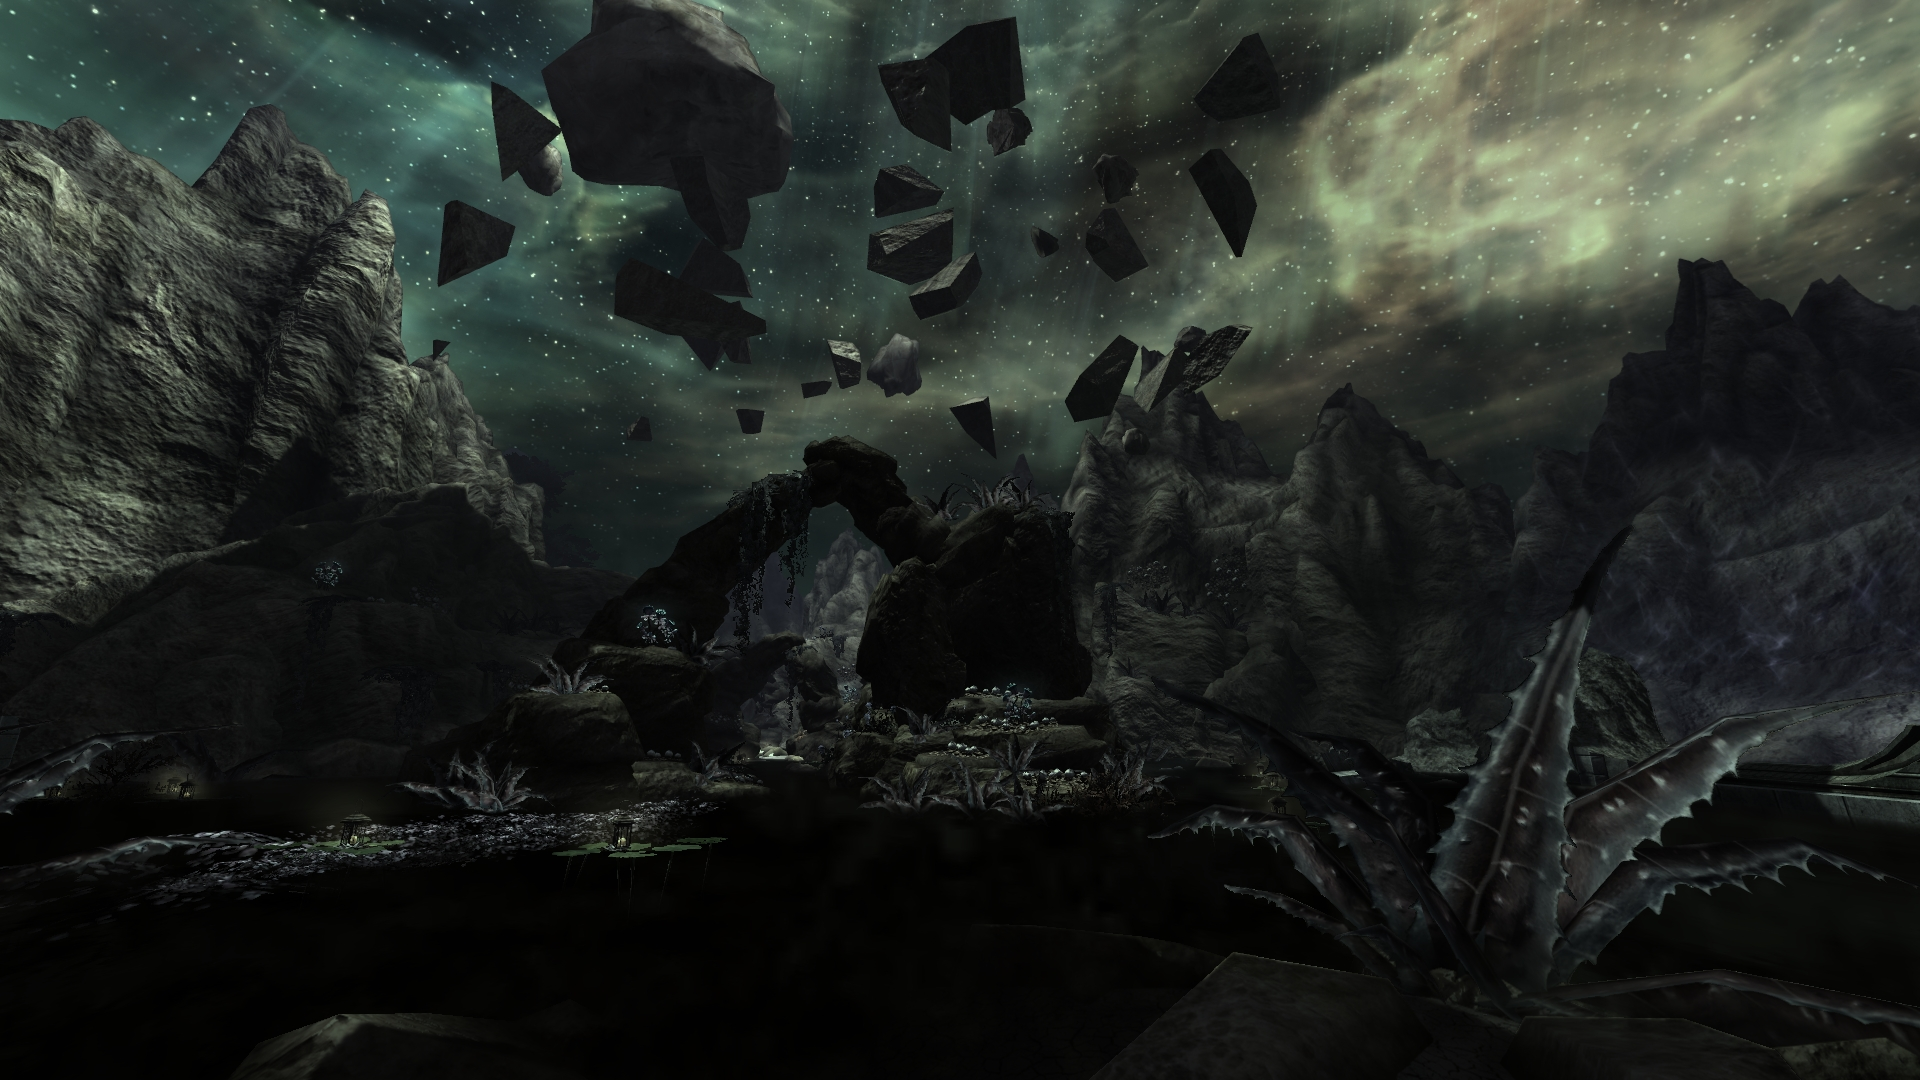 The Colored Rooms Meridia